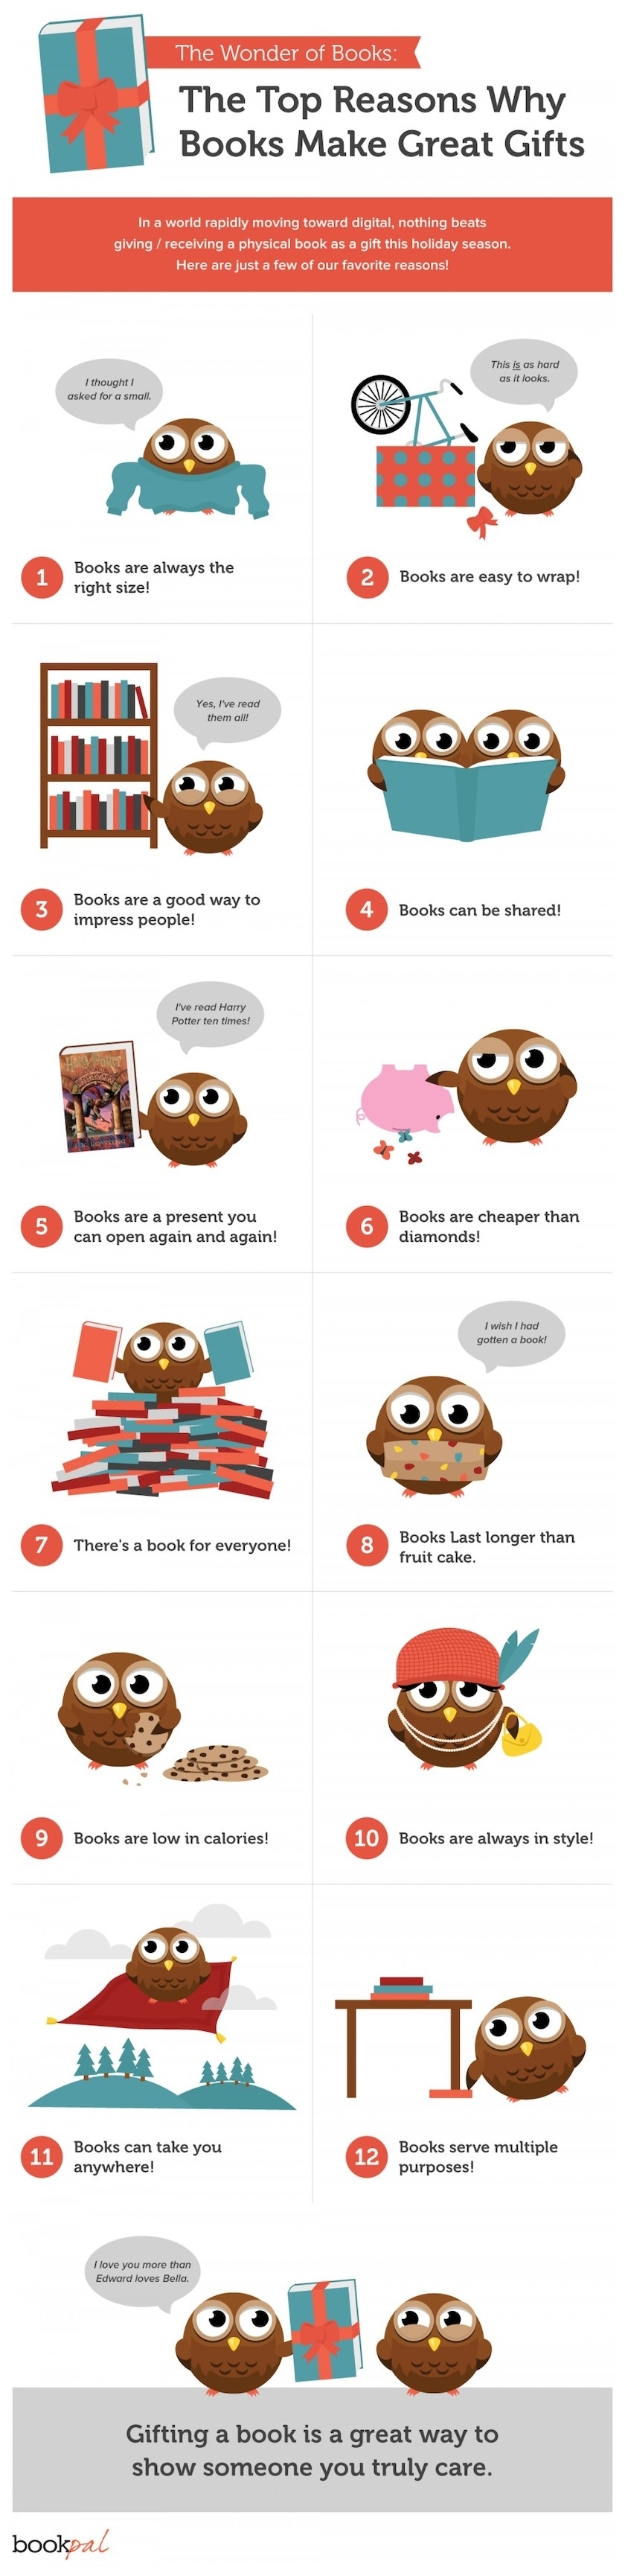 Reasons Books Make Great Gifts Infographic from Book-Pal.com